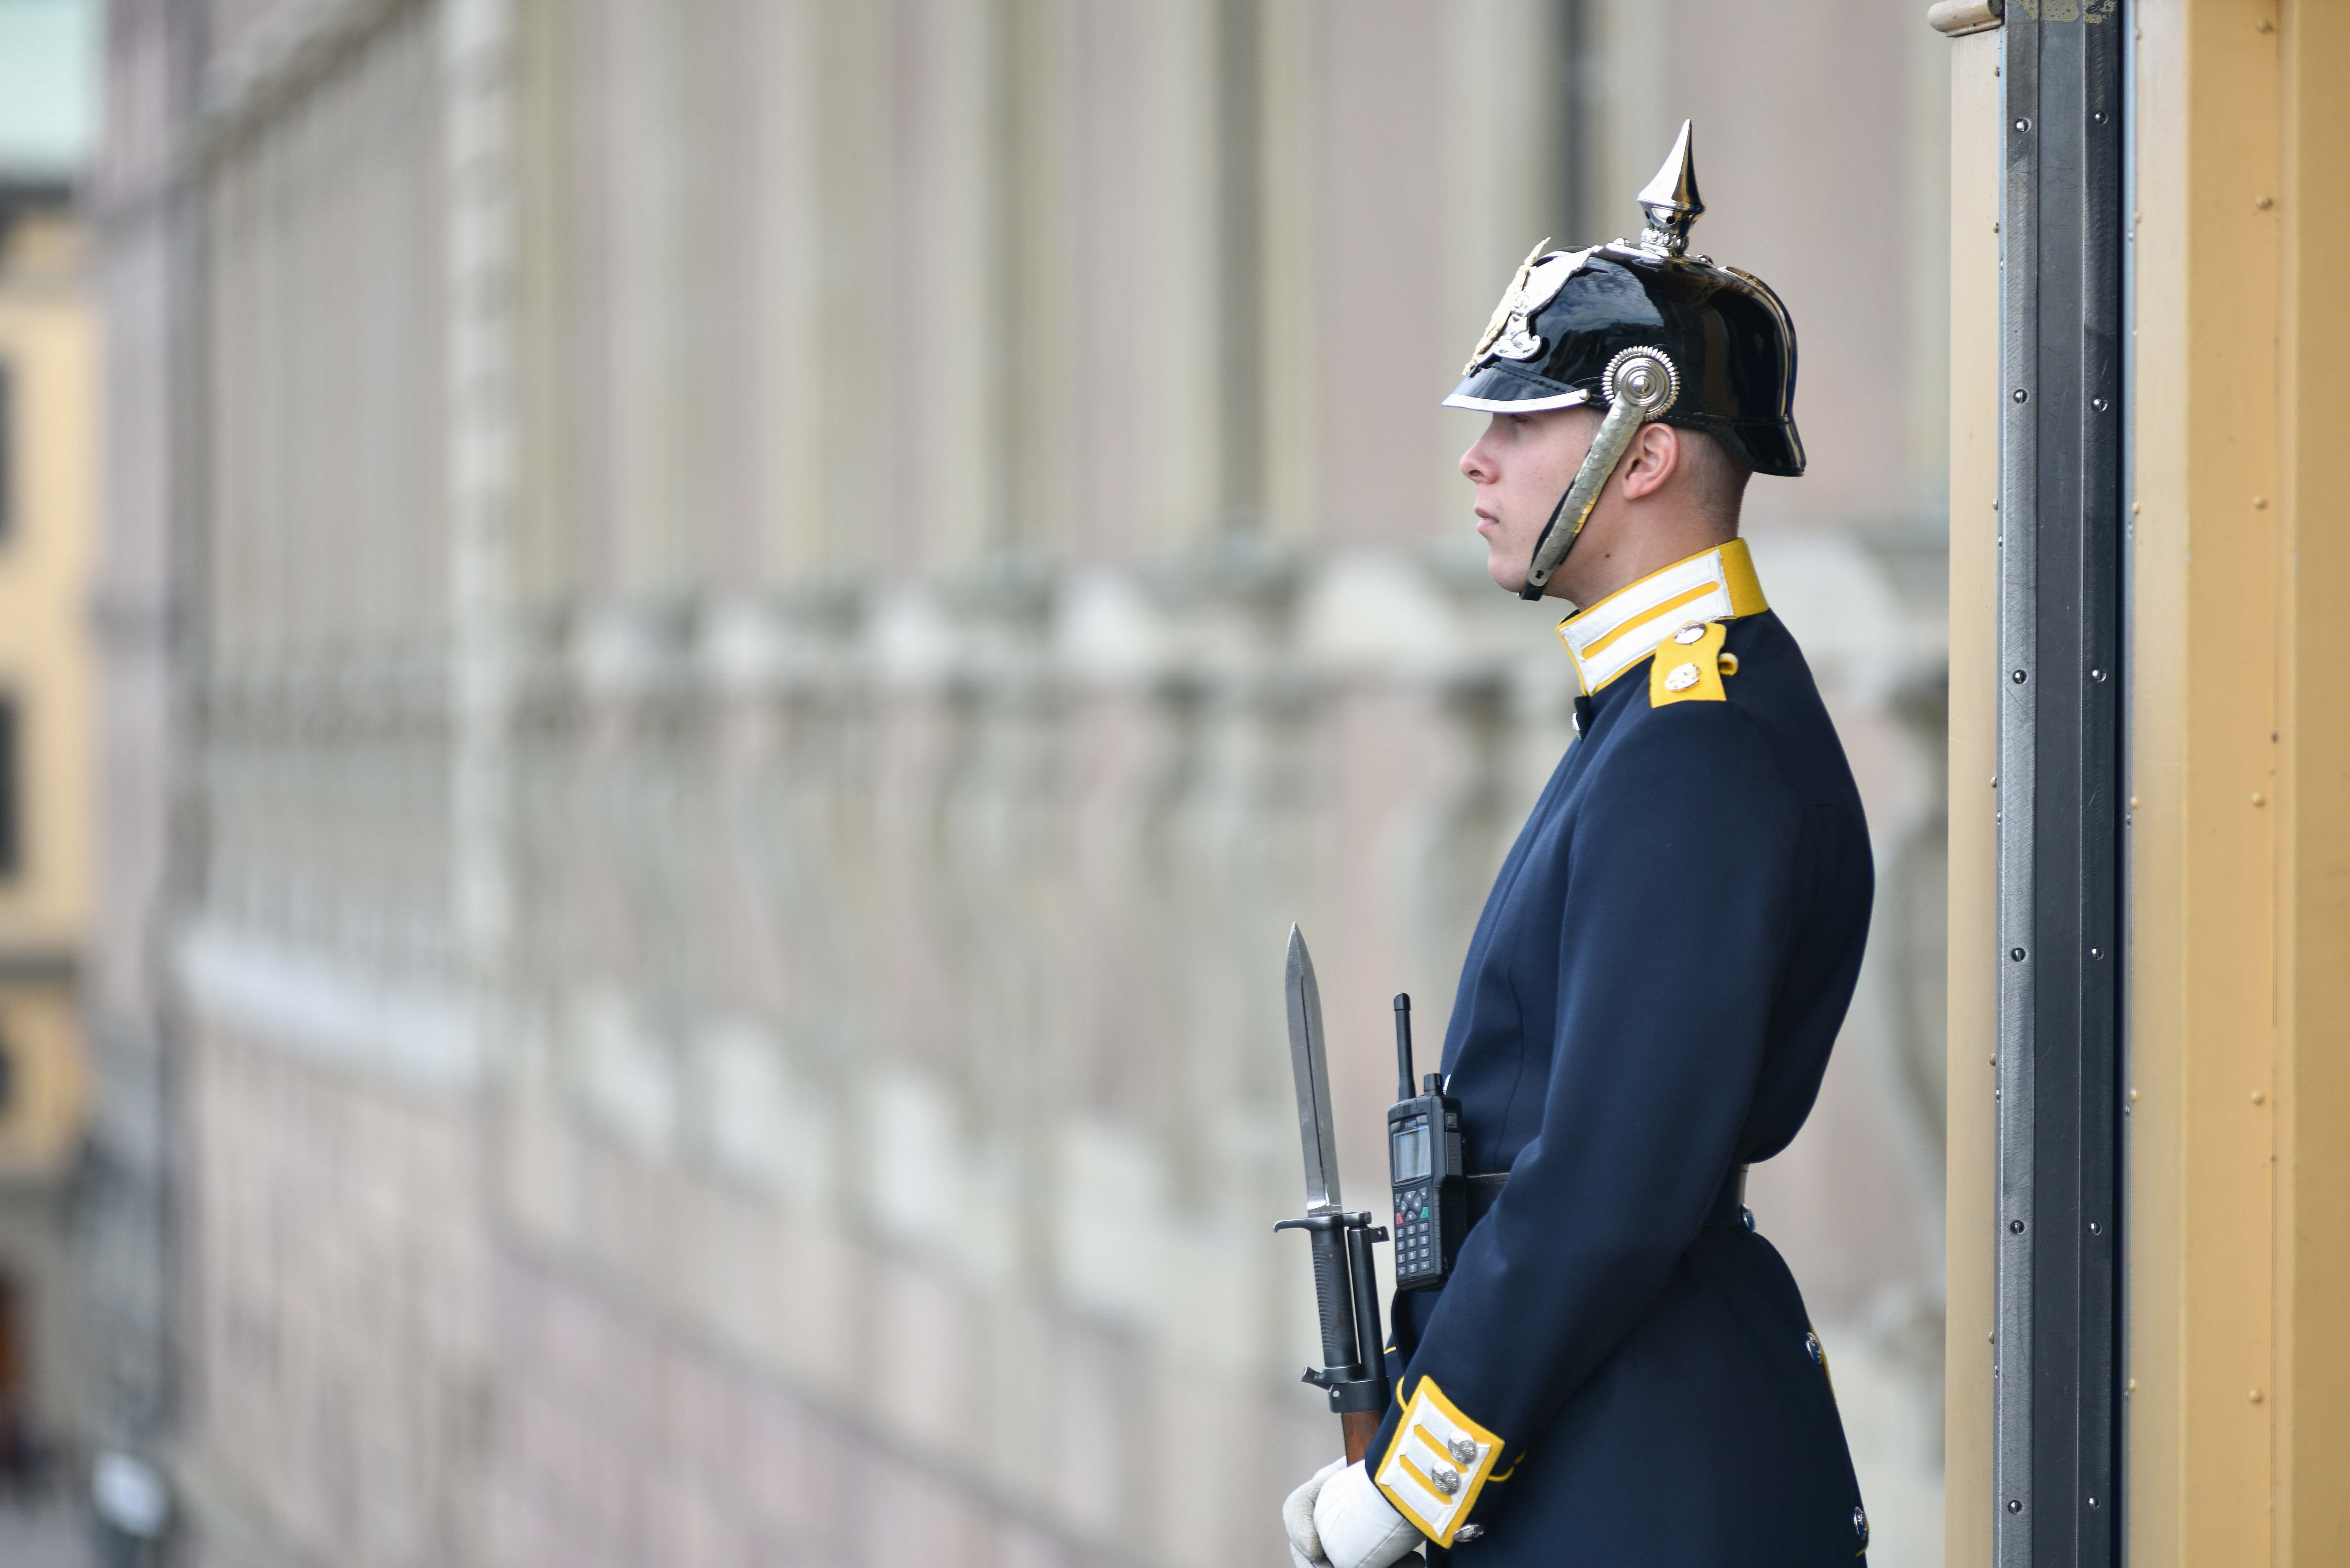 People Royal Guard Holding Rifle Person Image - Free Stock